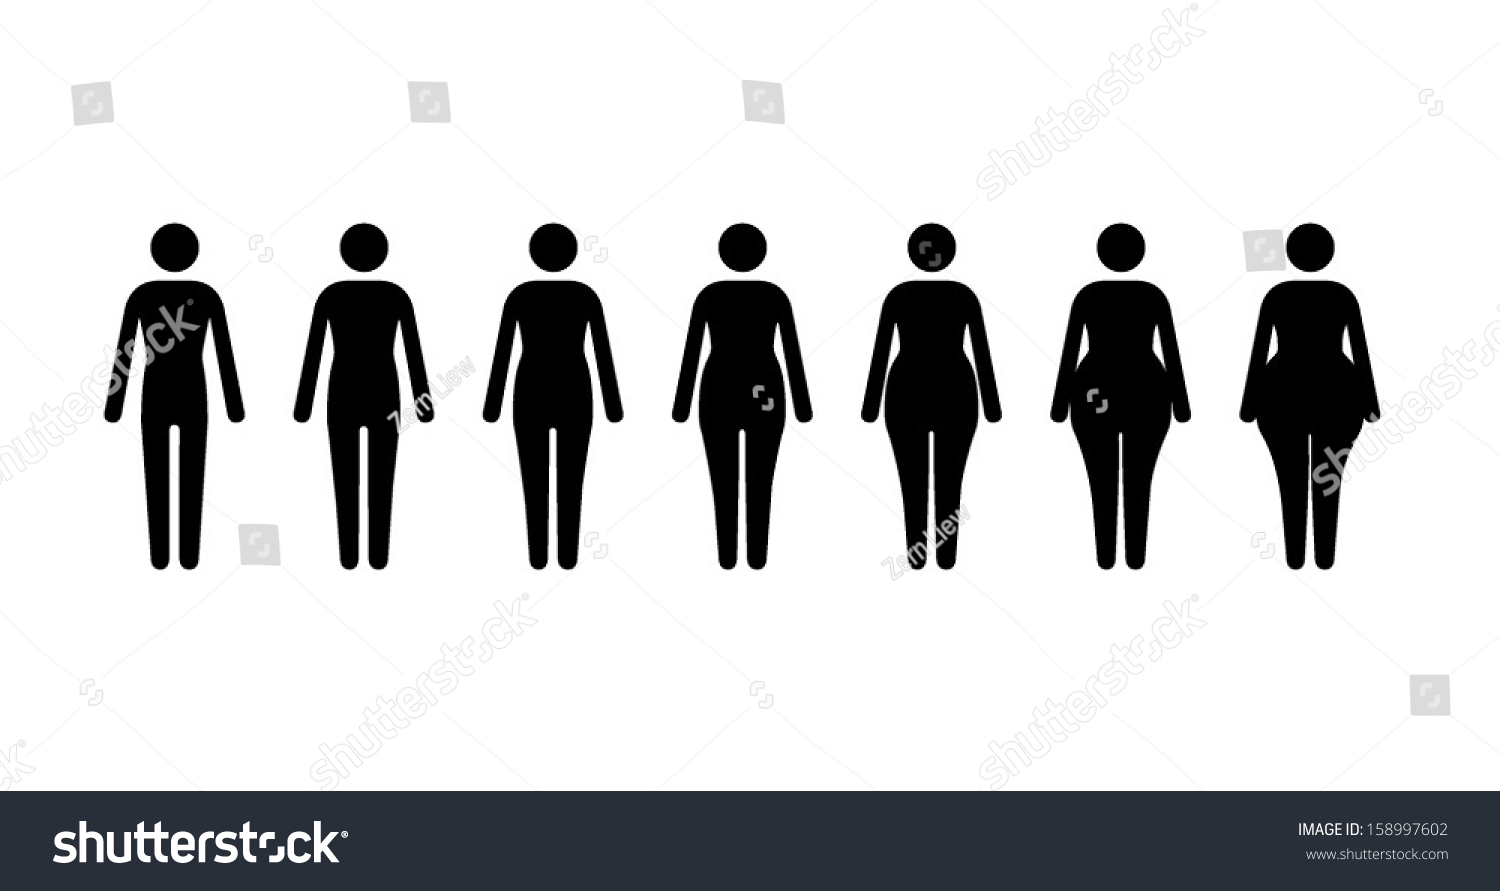 how to find out bmi of a person